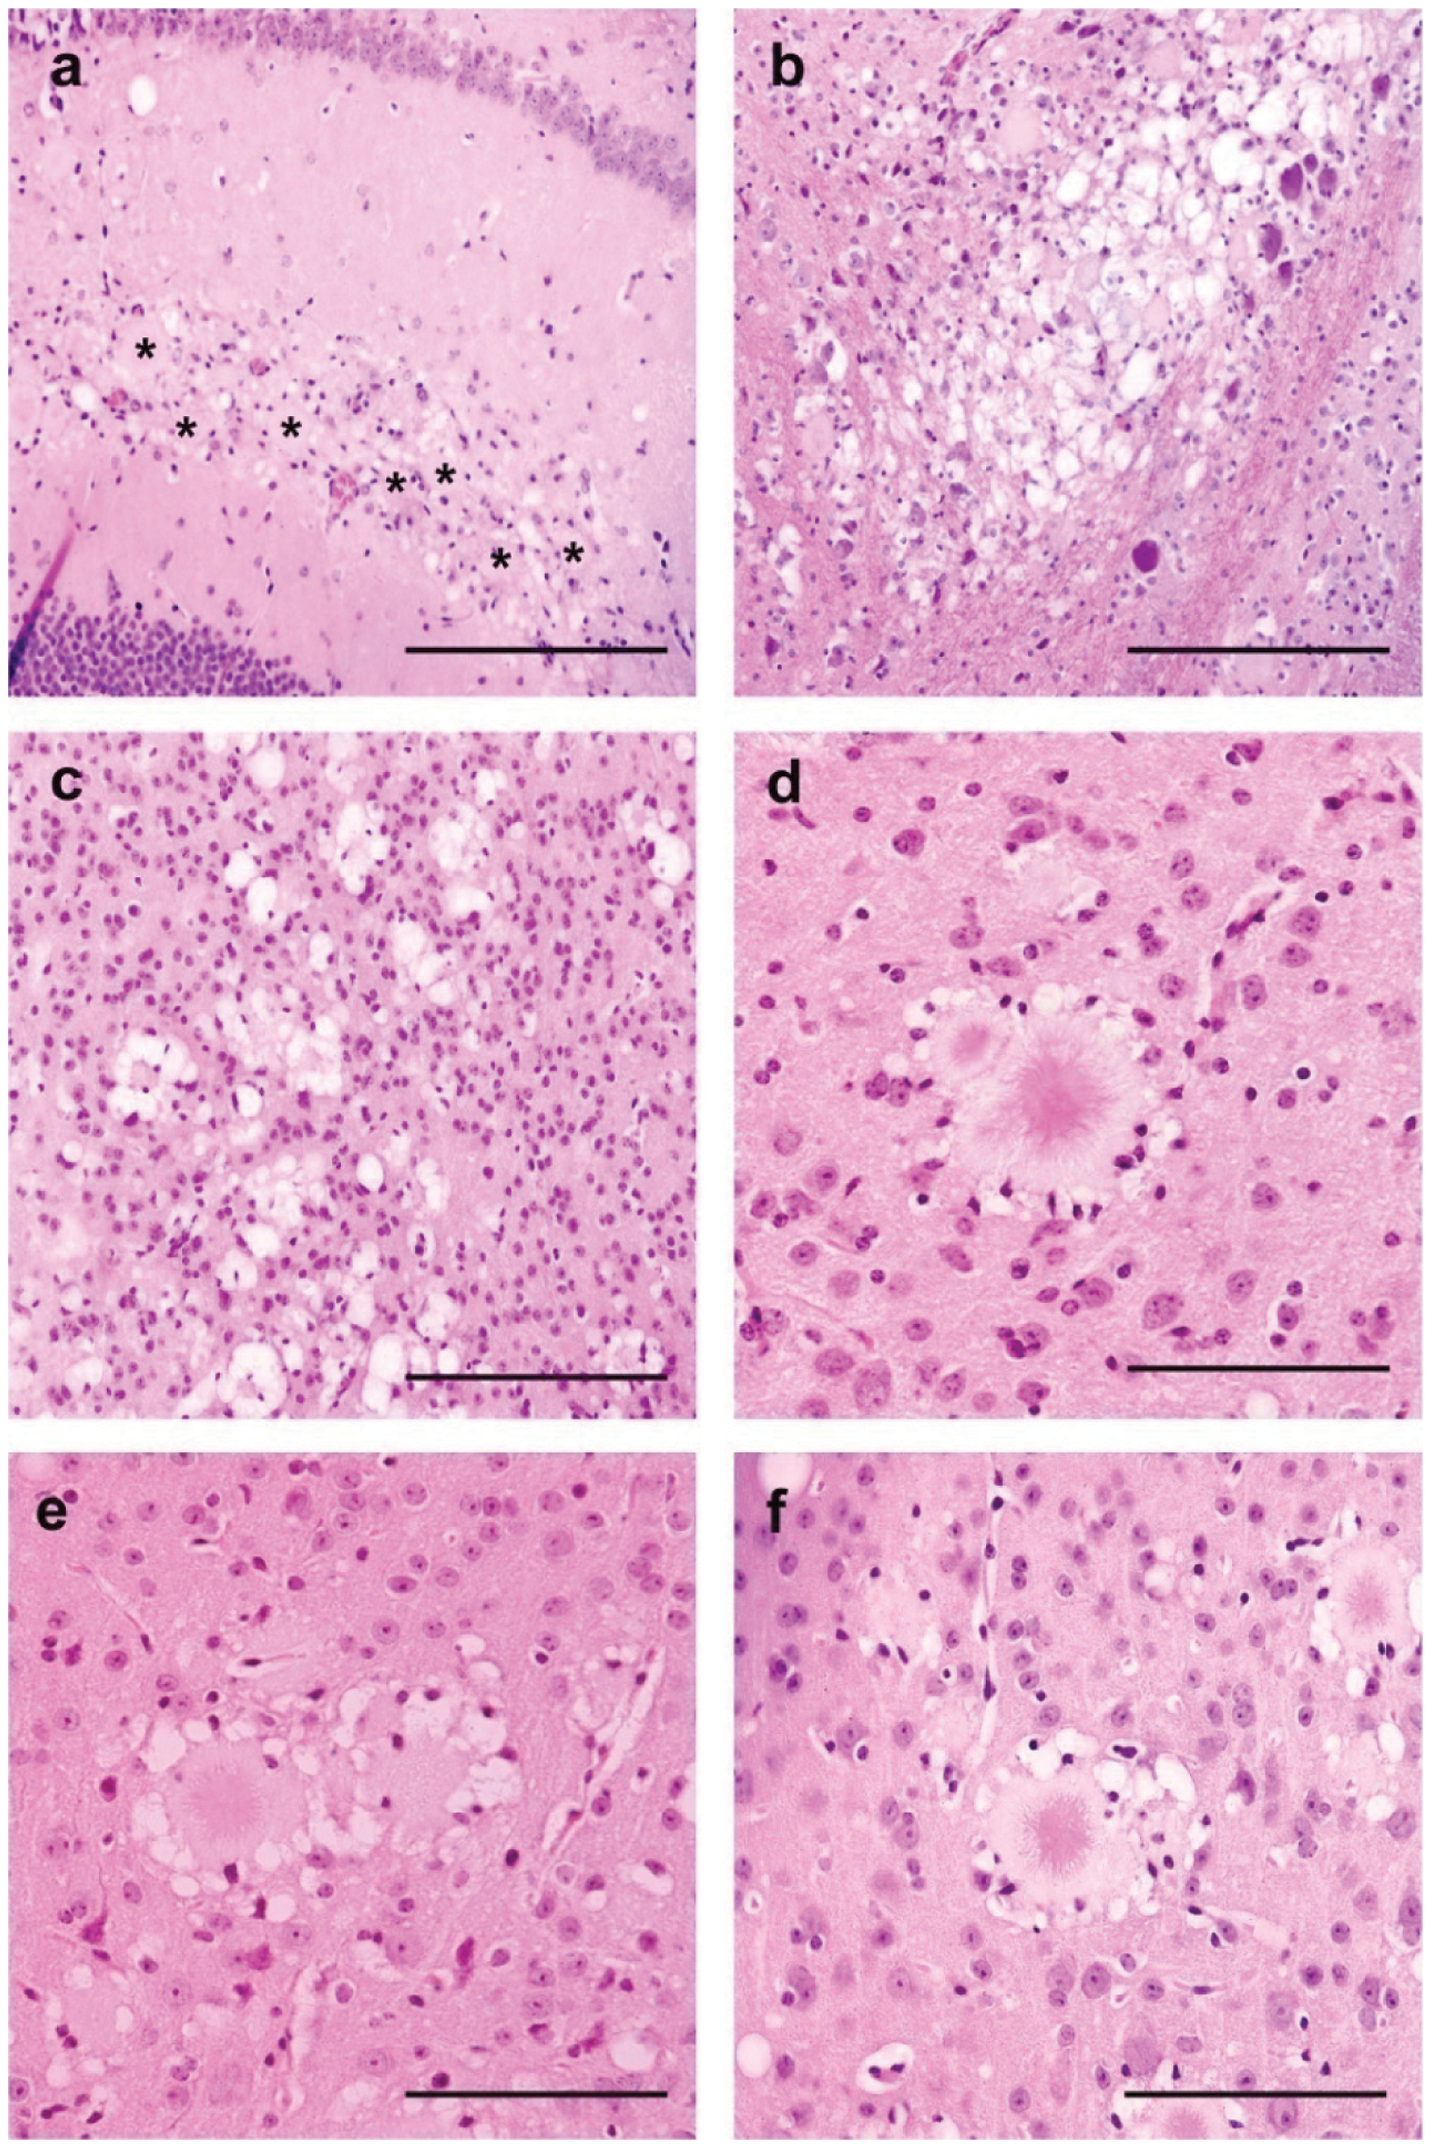 Brain vacuolar changes and amyloid plaques in transgenic mice for the human PRNP gene (methionine 129 variant - tg650).